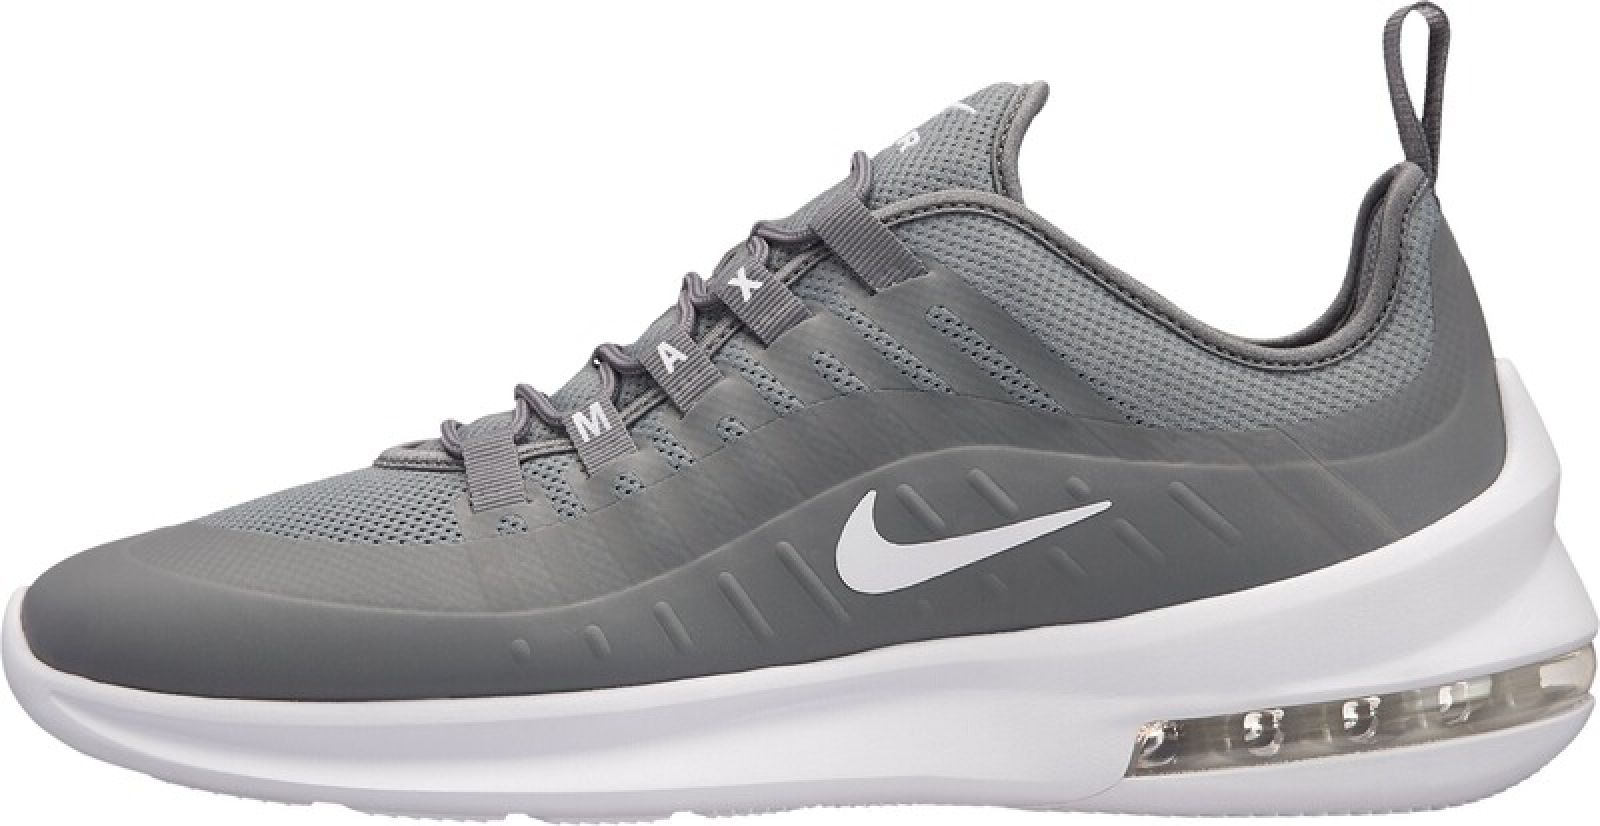 Details about Nike Men's Casual Shoes Trainers Trend Schuhe Trainers Air Max Axis Grey